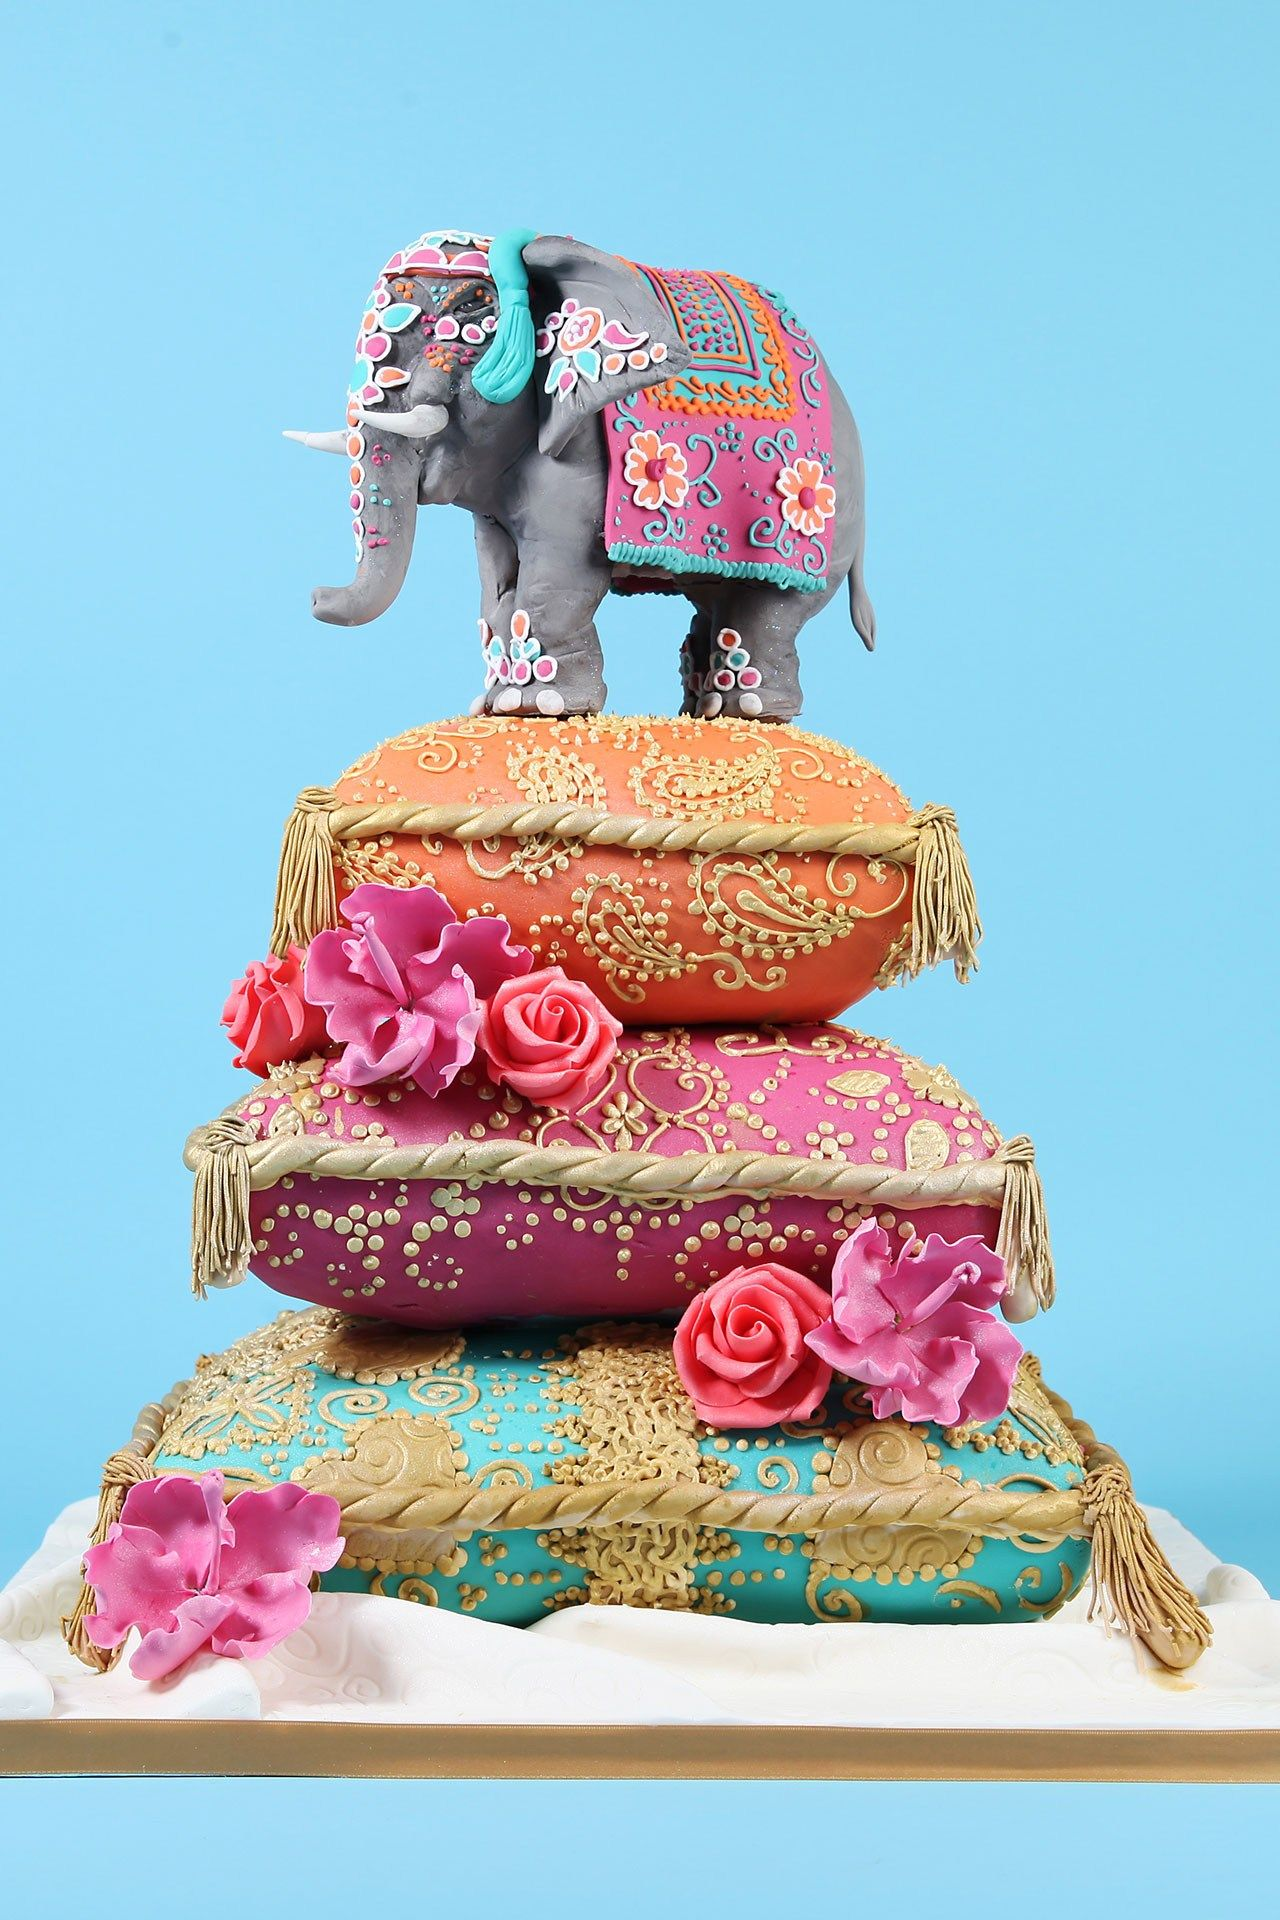 Kuchen Design Maroc Want A Seriously Show Stopping Cake To Serve Your Guests